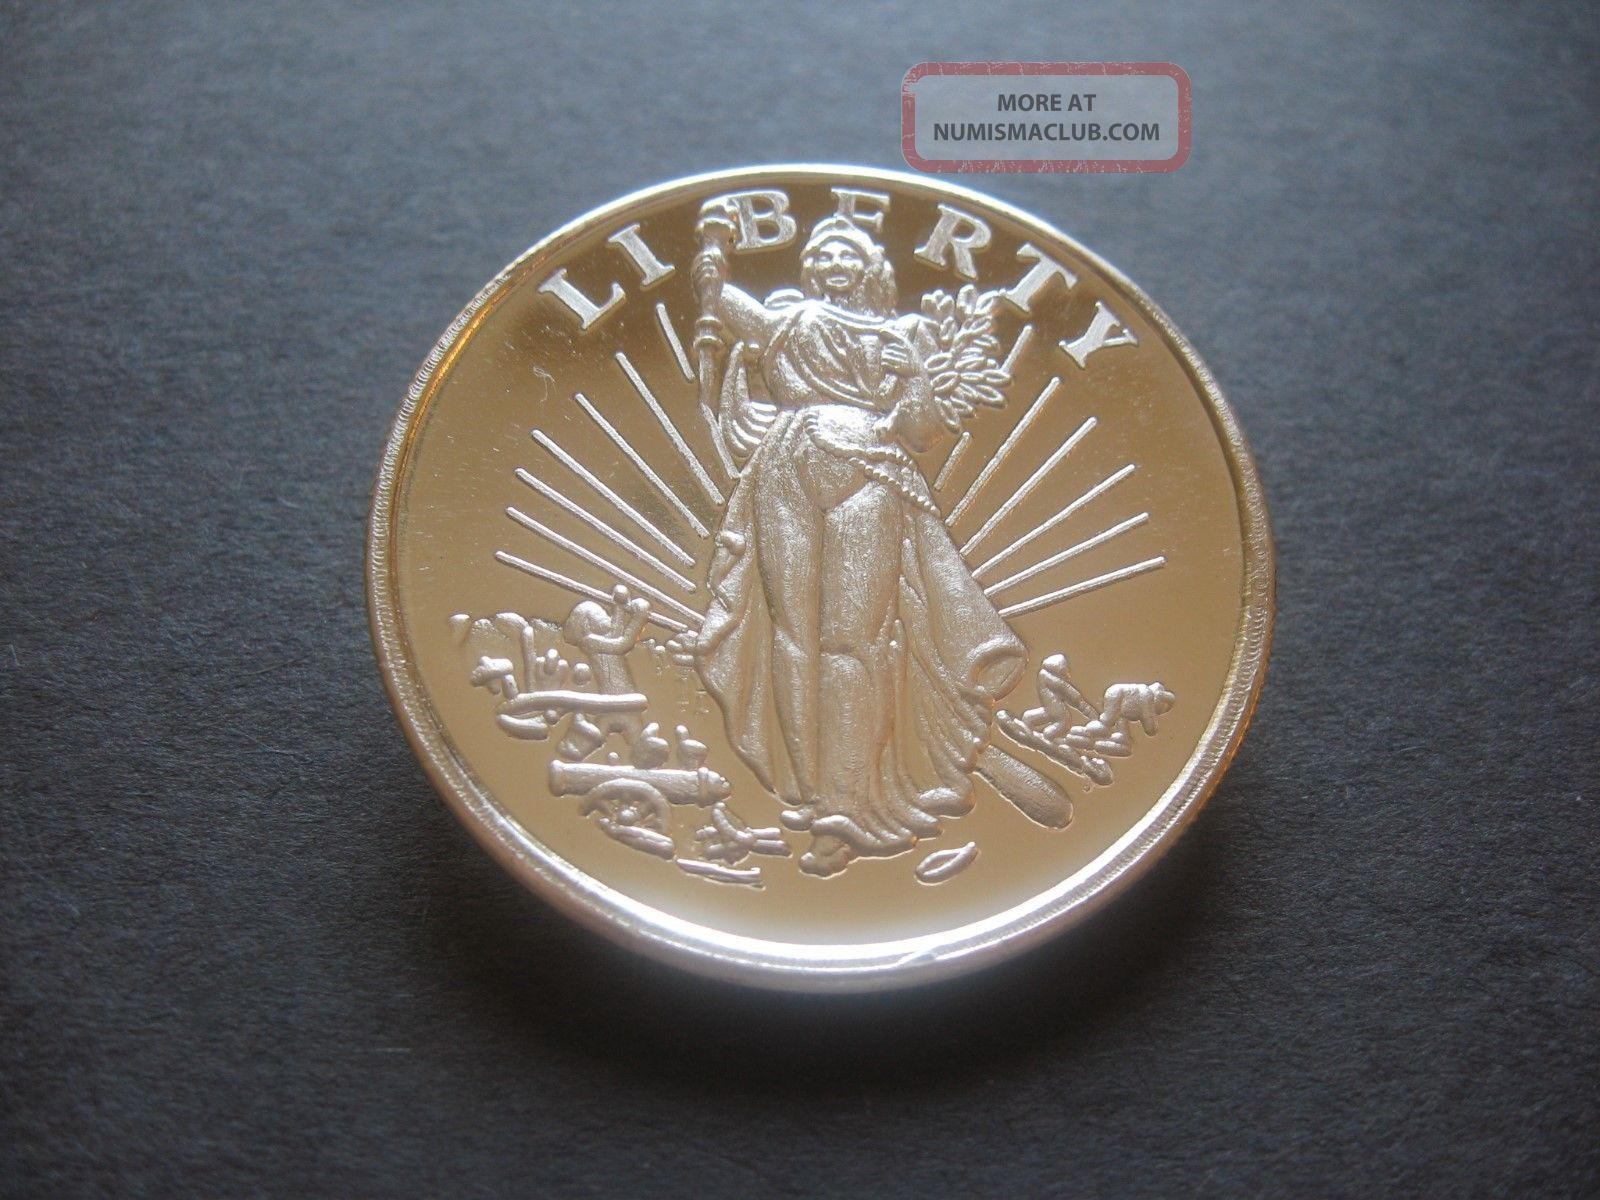 1 Troy Ounce Liberty 0 999 Fine Silver Round